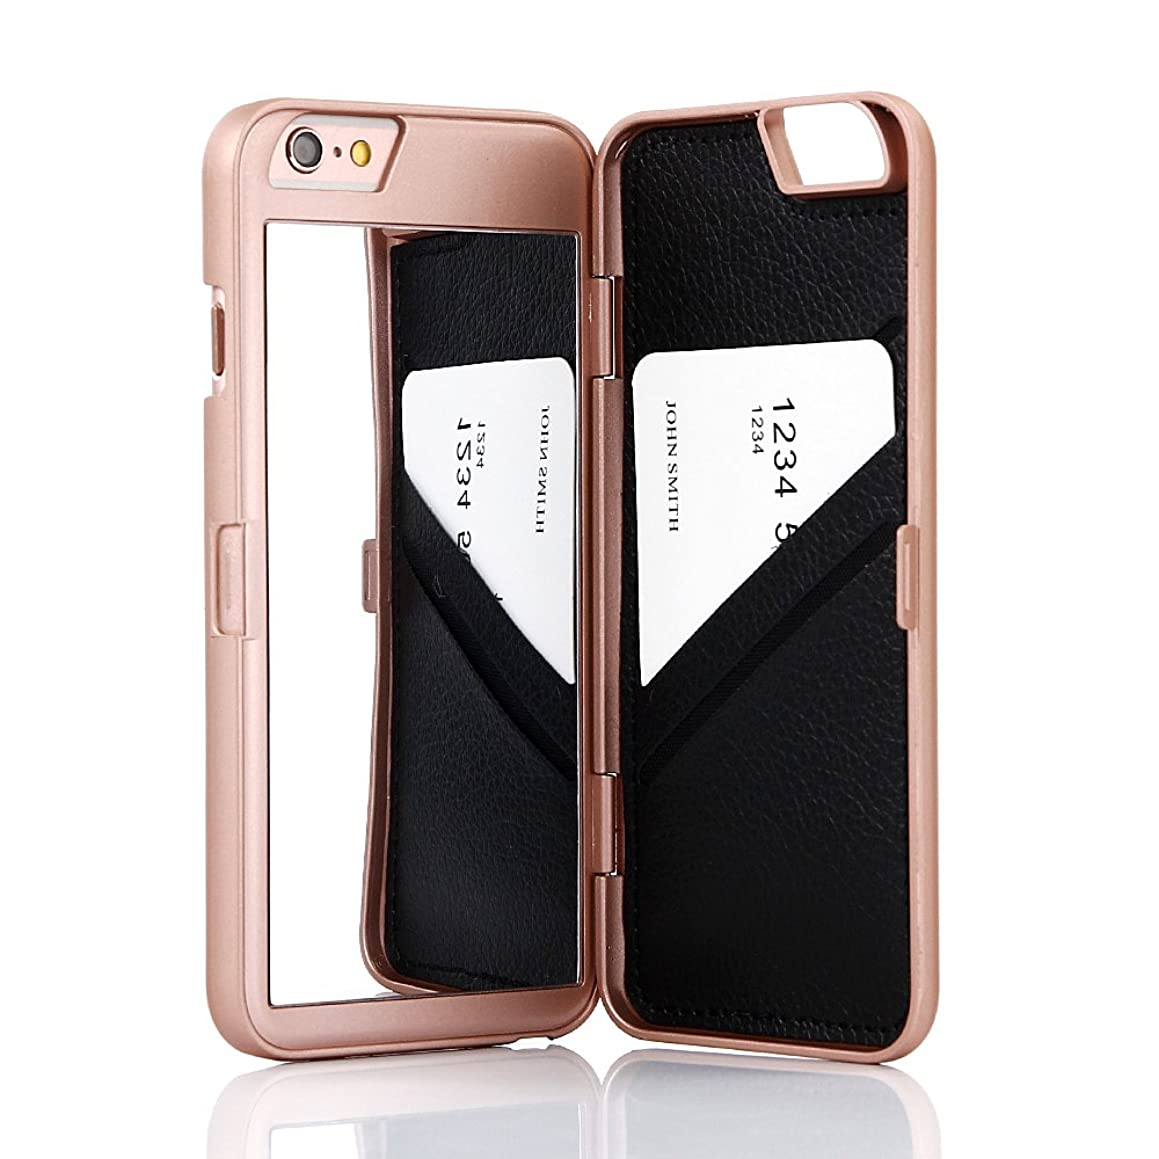 Wetben Case for iPhone 6/6s,Hidden Back Mirror Wallet Case with Stand Feature and Card Holder for Apple iPhone 6, 6S 4.7